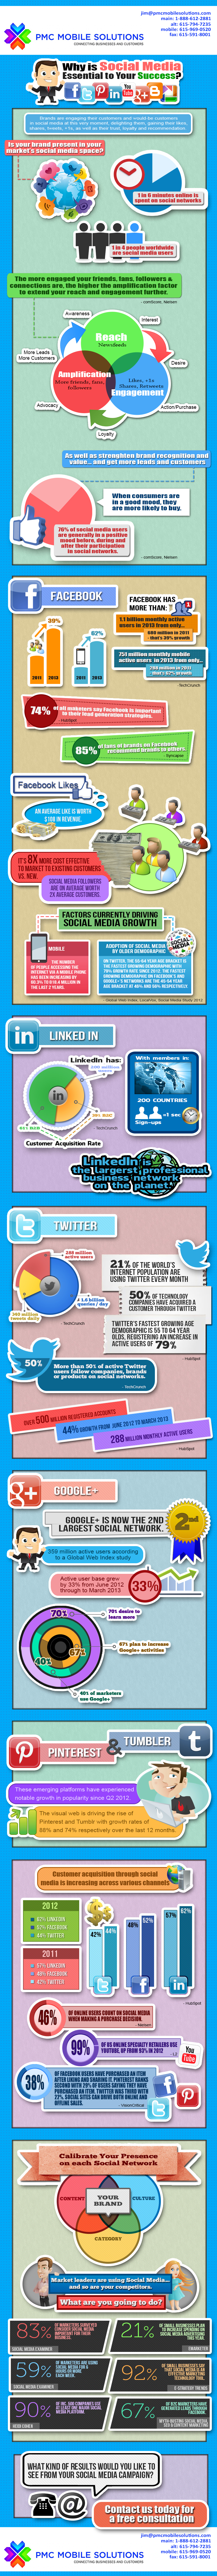 PMCMobileSolutions.com-Social-Media-Optimization-Infographic-2013